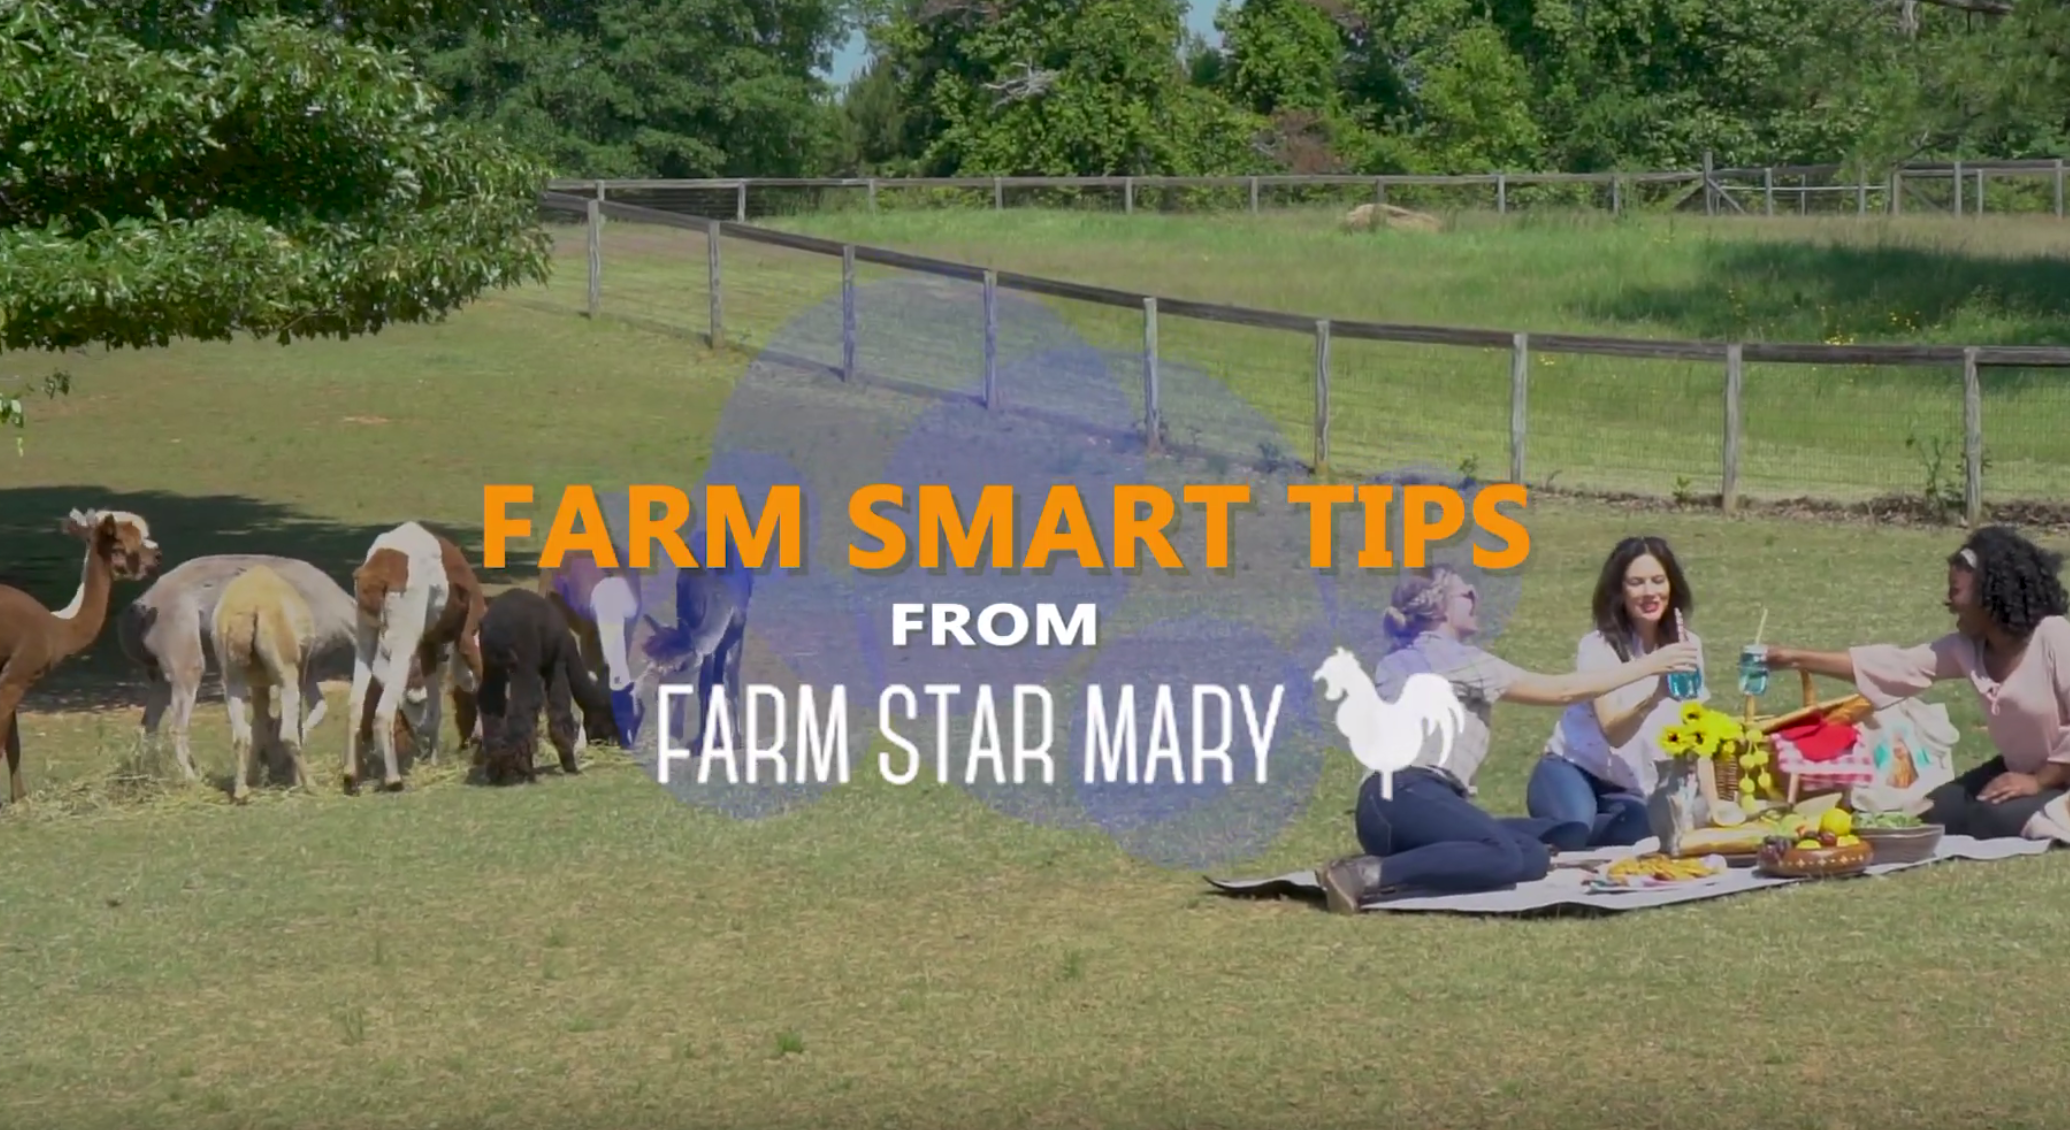 Smart Tips for Farm Trips: Tip #1